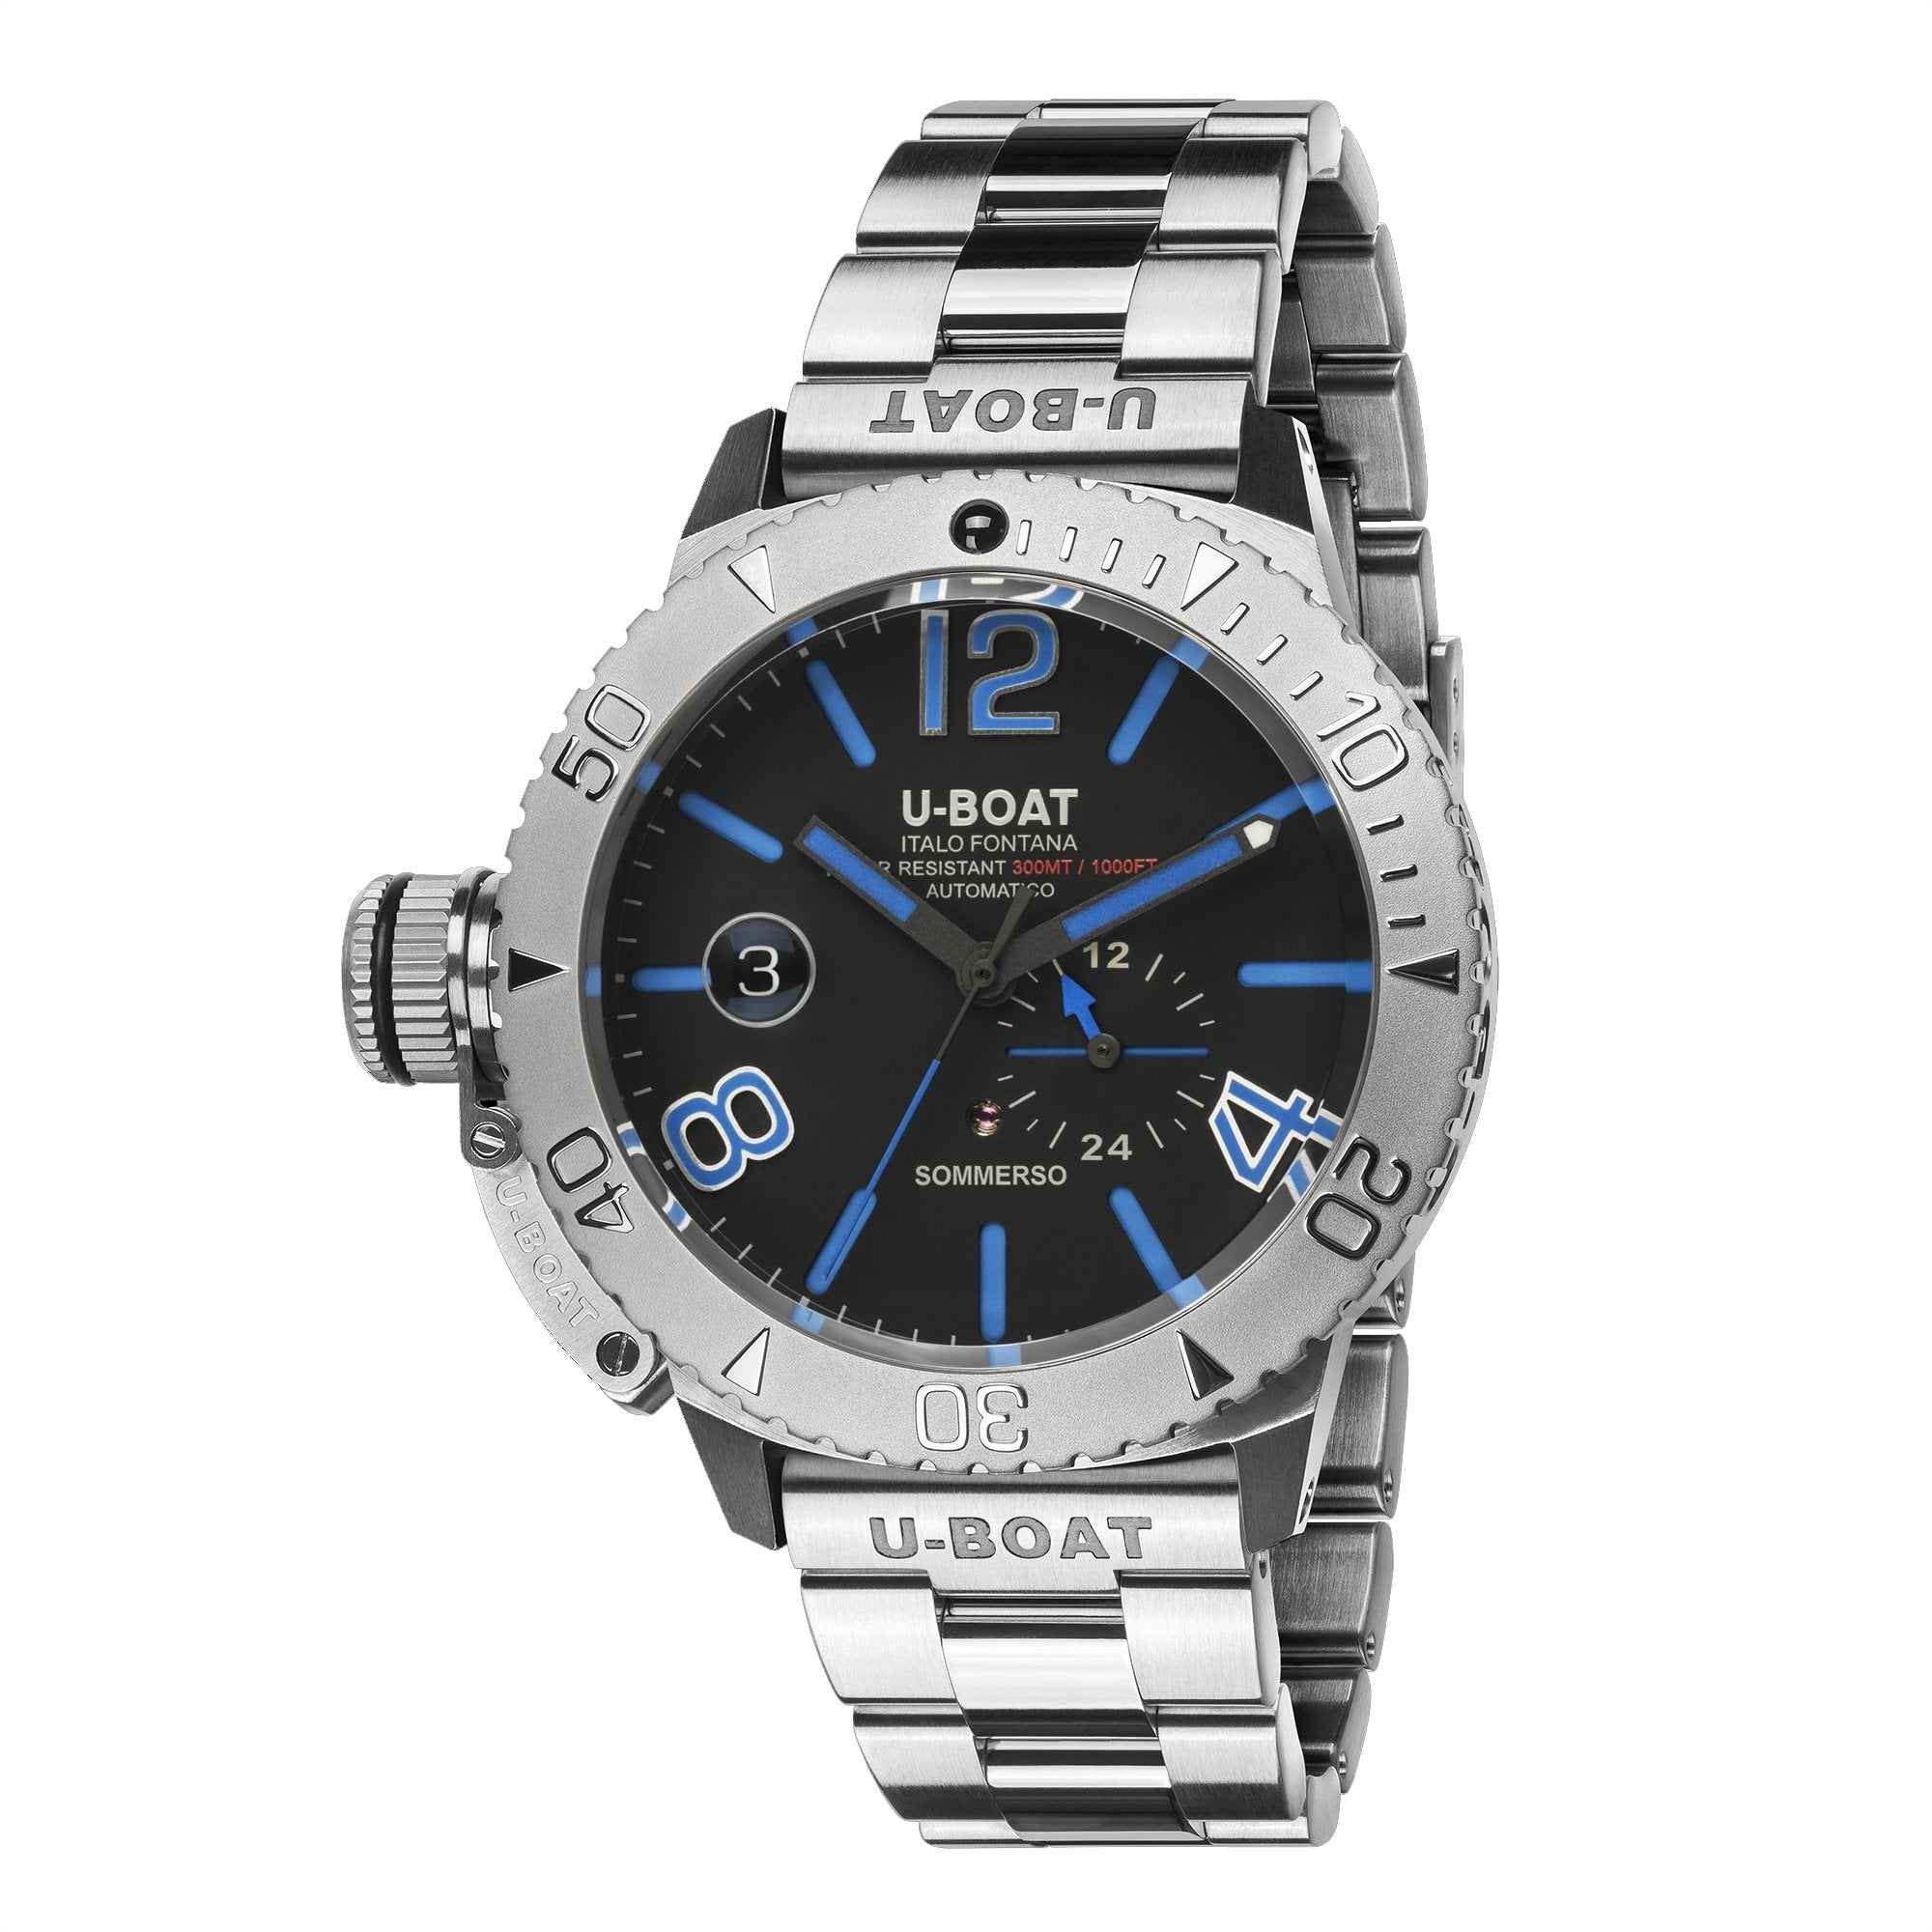 U-Boat Sommerso Diver Blue Stainless Steel - Watches & Crystals